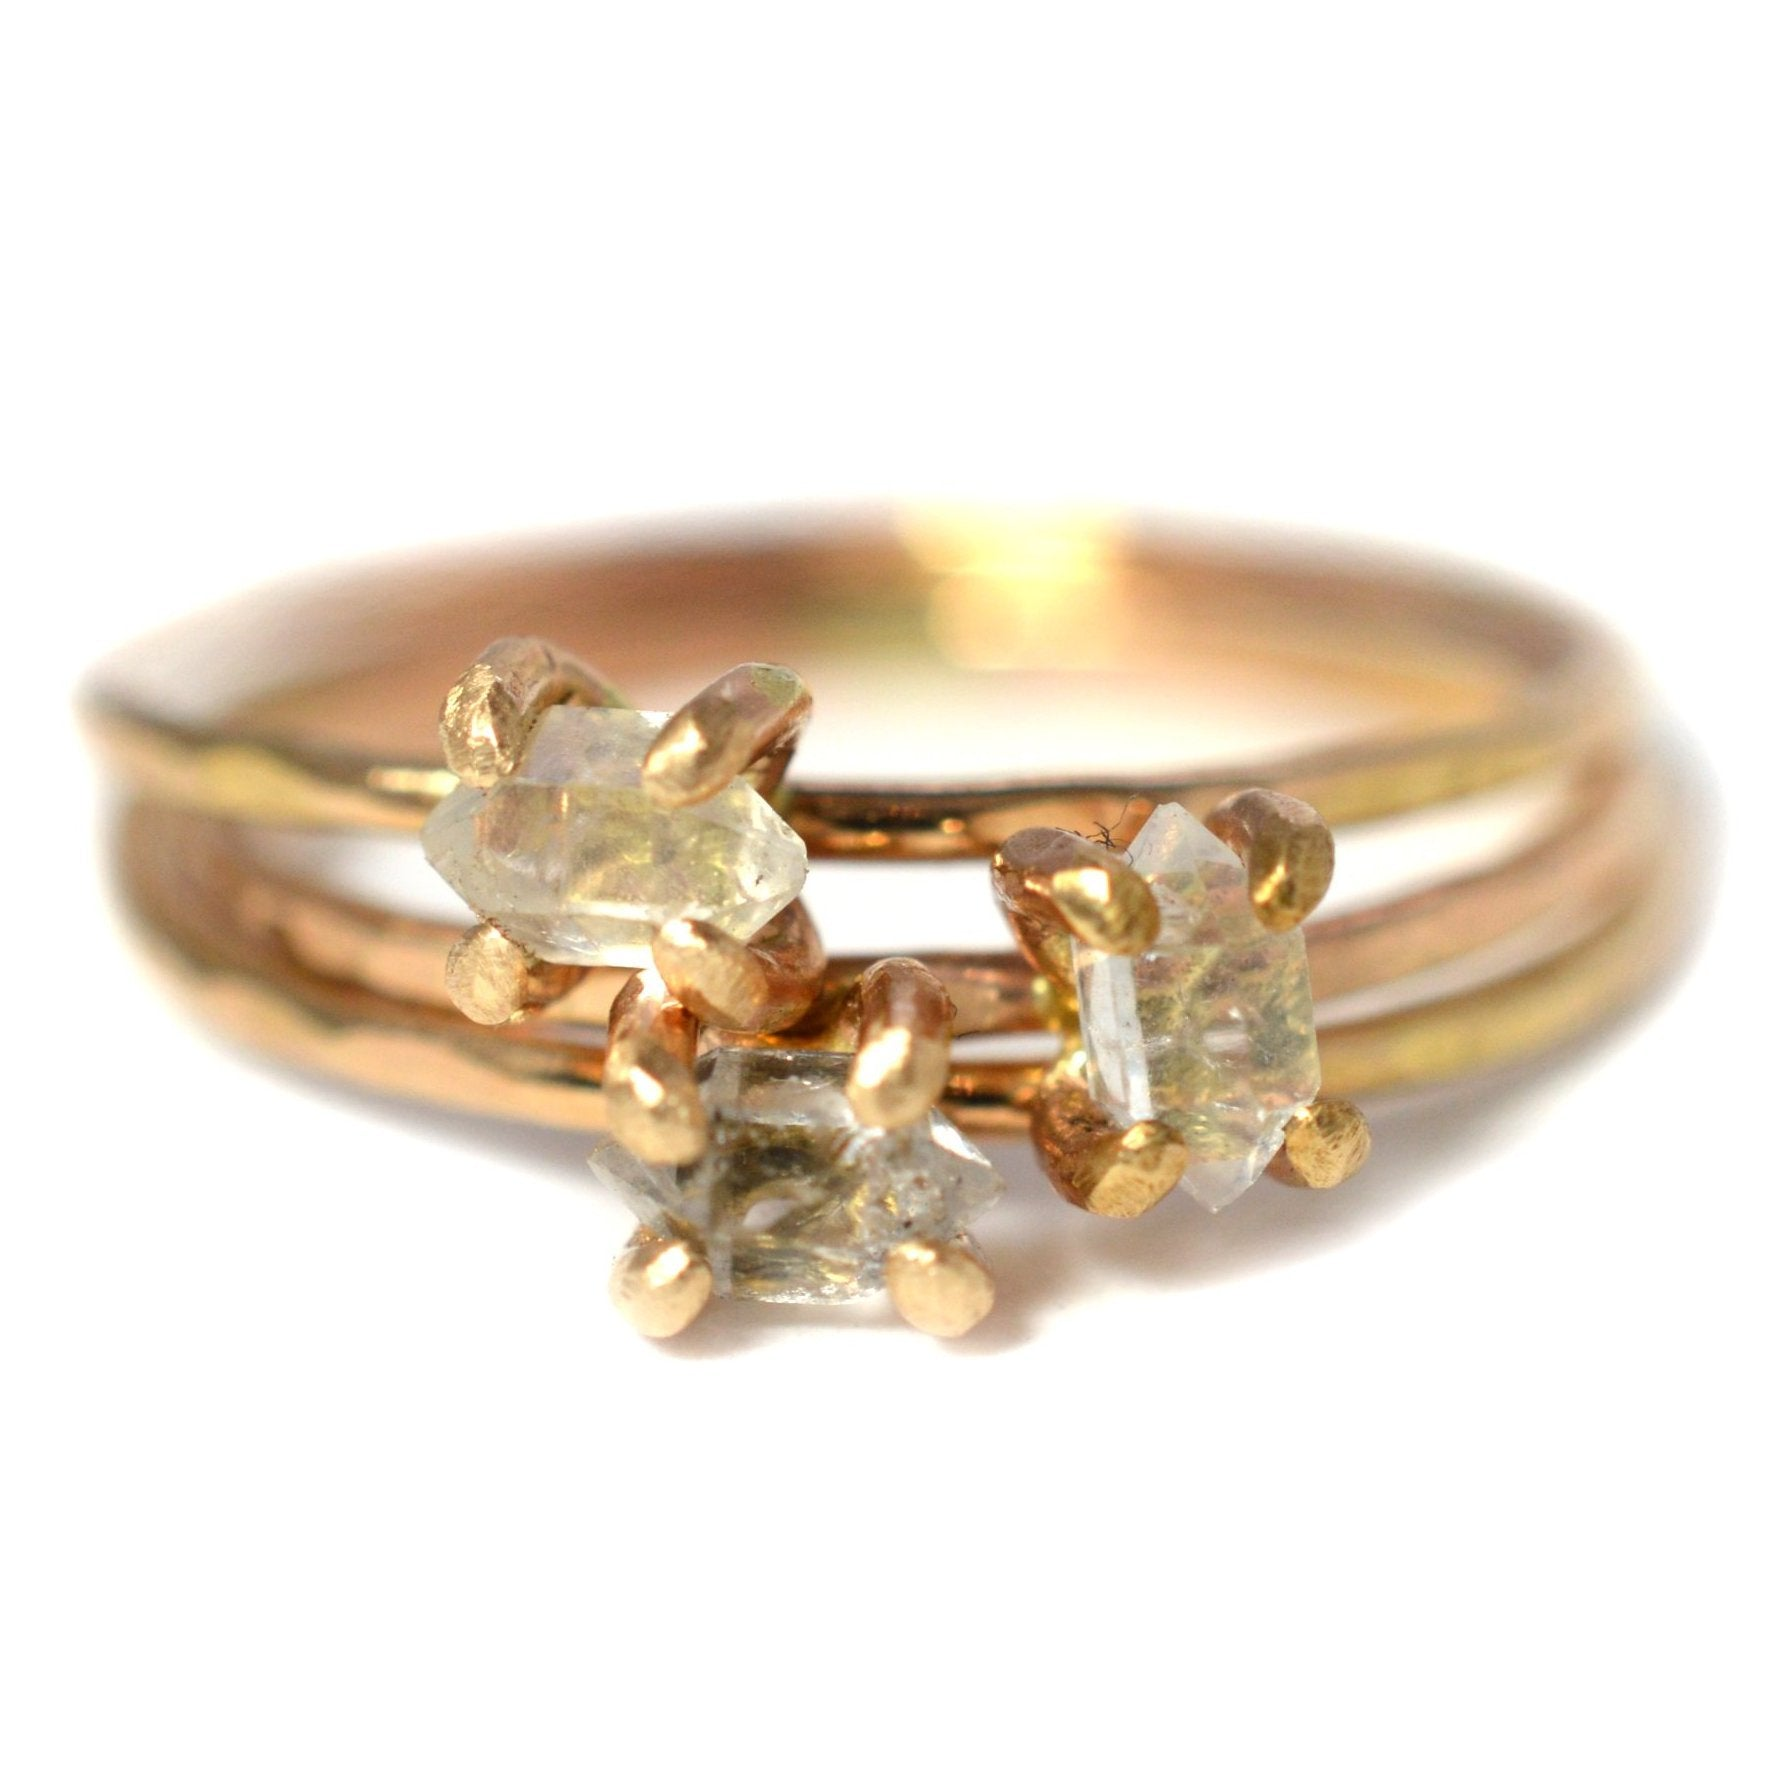 herkimer diamond ring, aquarian thoughts jewelry